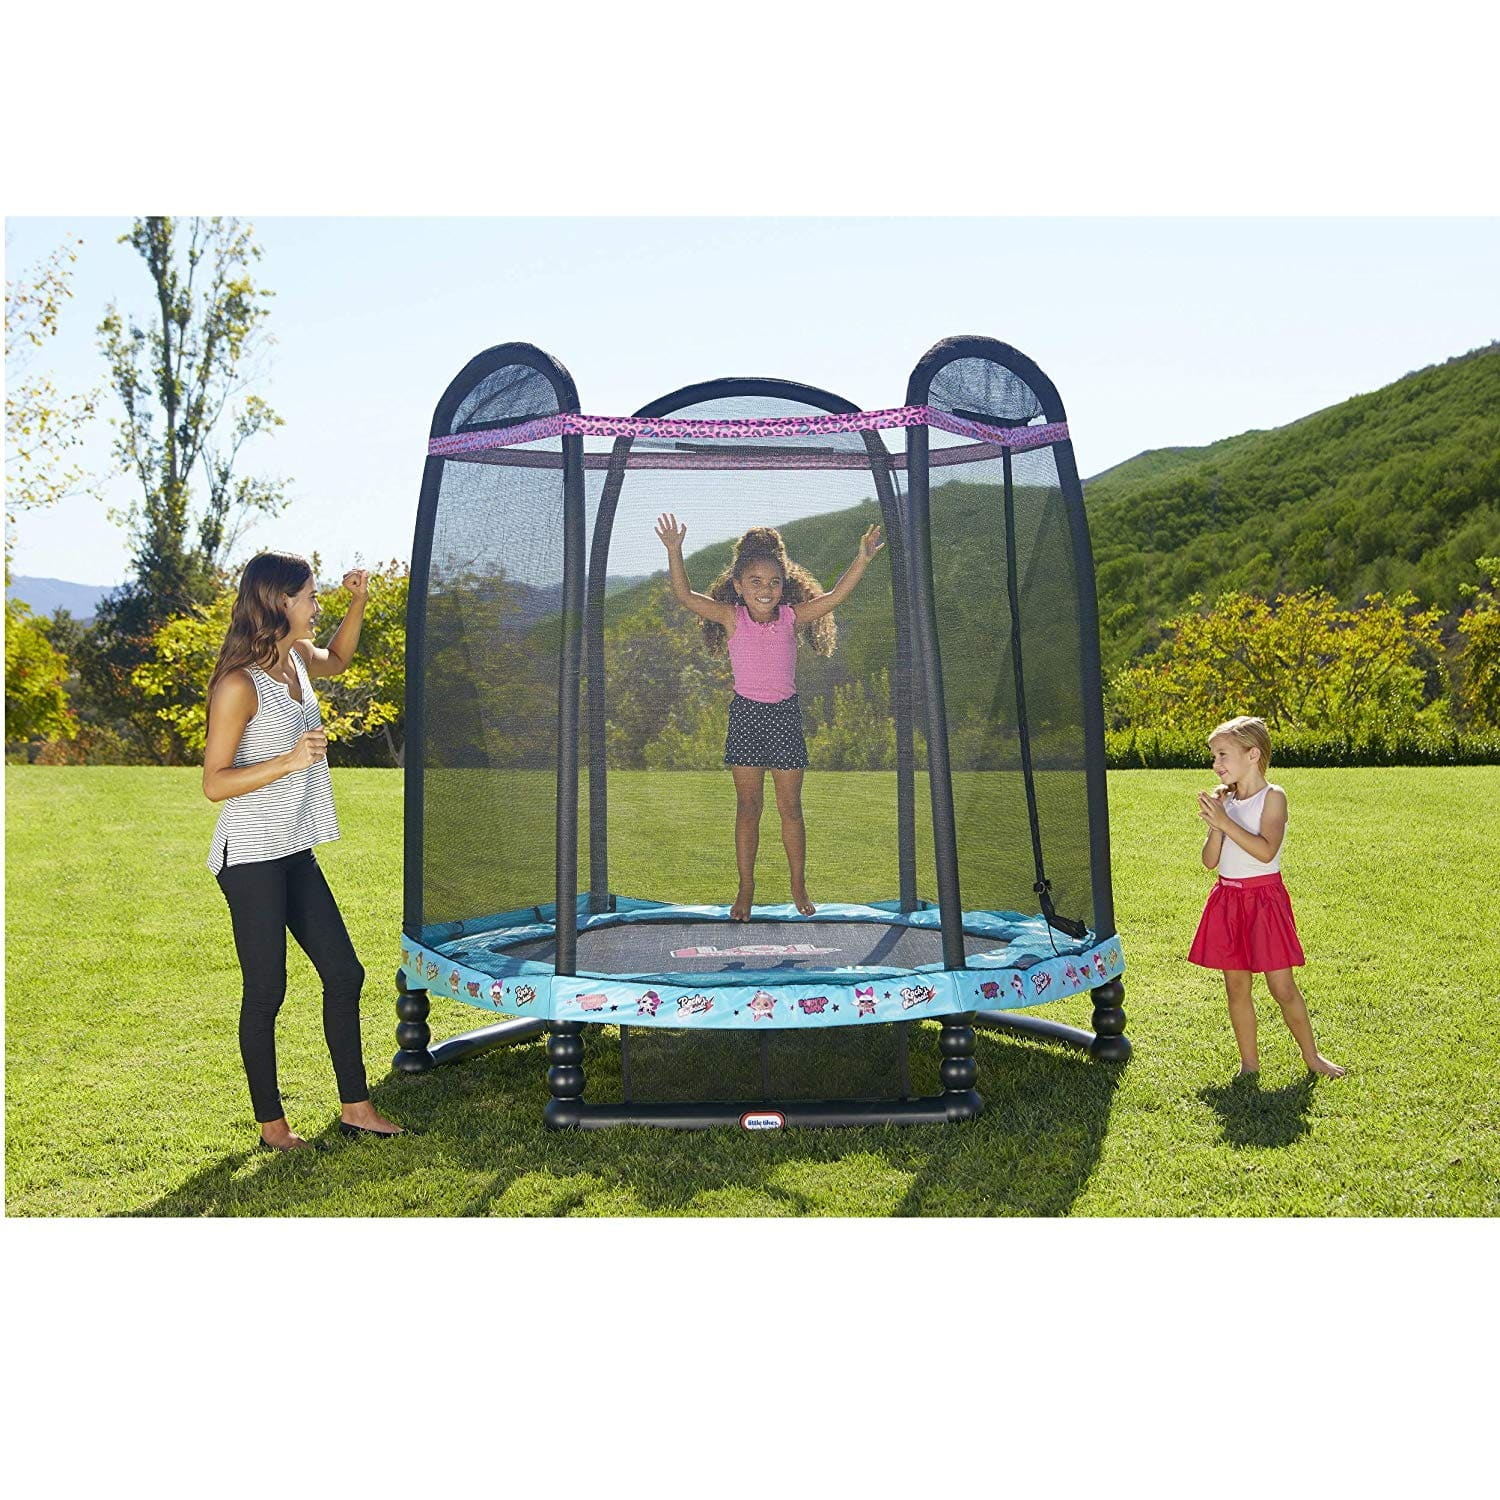 L.O.L. Surprise! Little Tikes 7' Enclosed Trampoline with Safety Net $66.74 free ship - Amazon